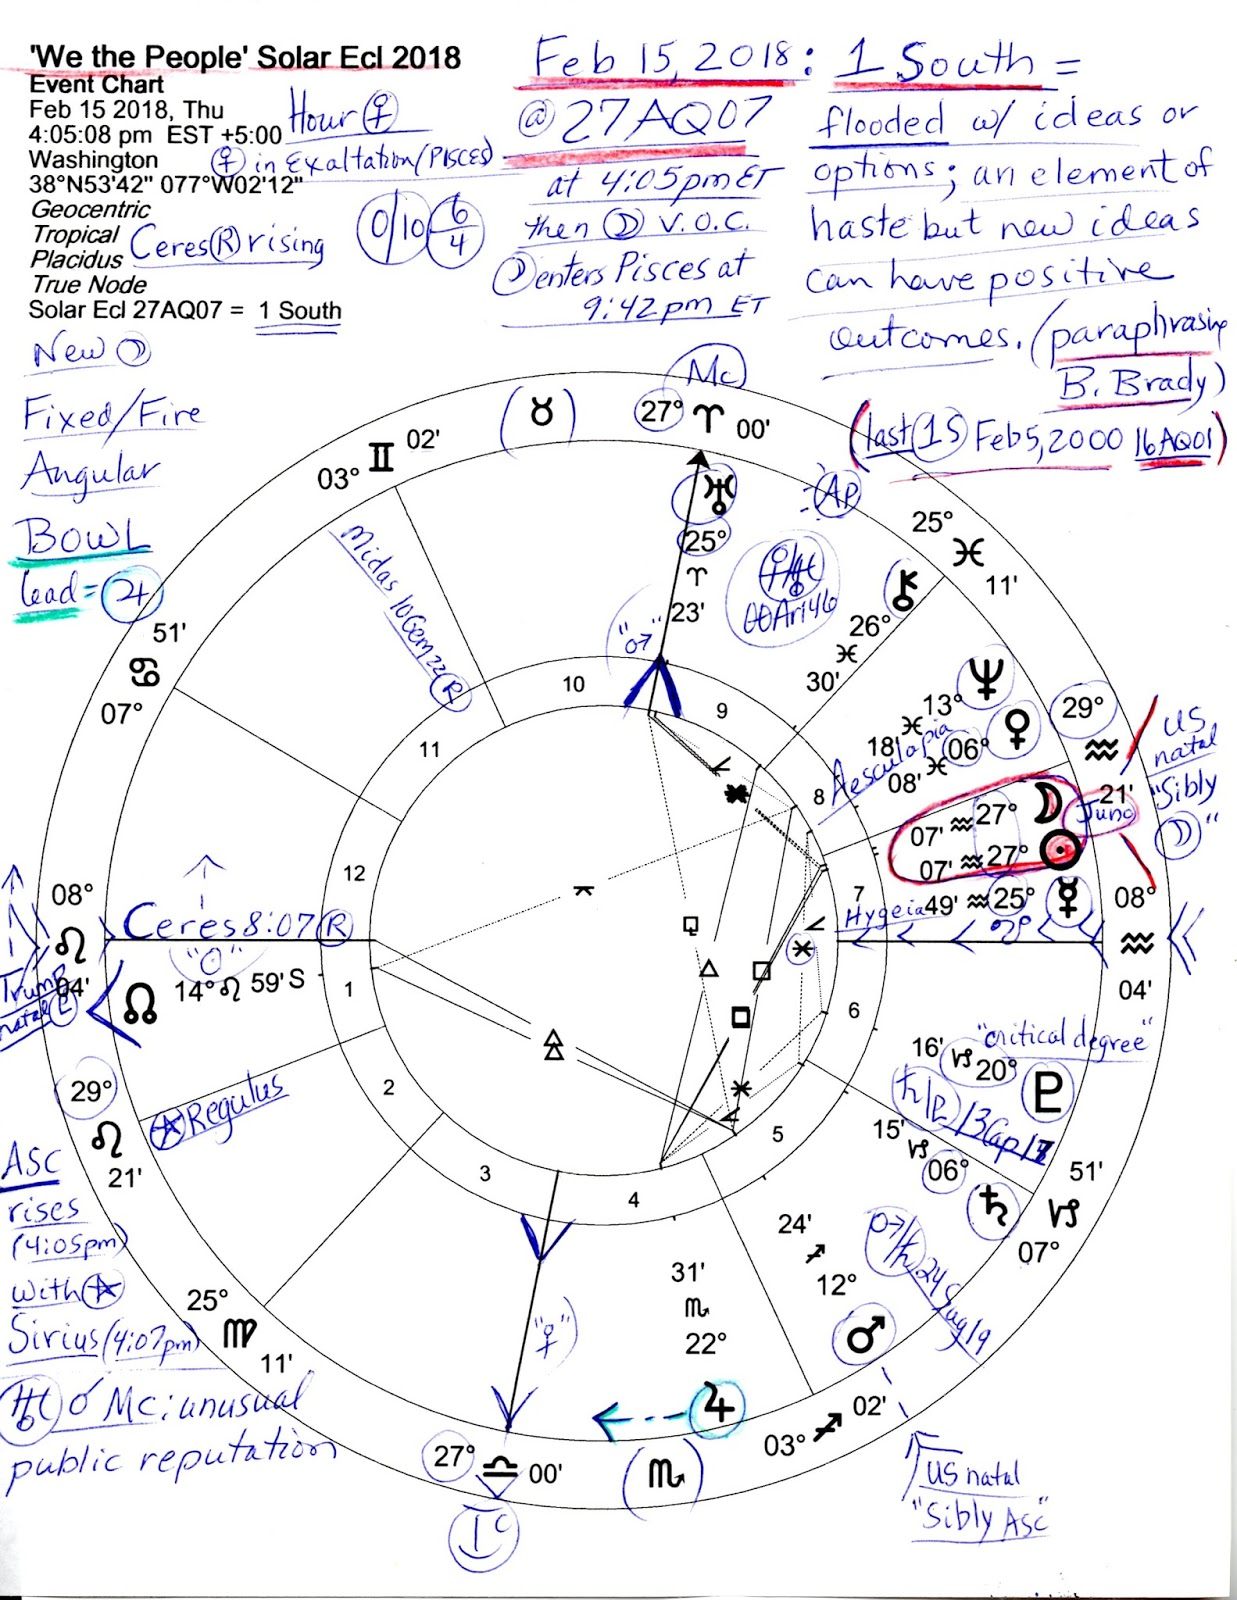 Stars over washington october 2017 image we the people solar eclipse february 15 2018 27aq07 so labeled because it eclipses us natal moon in the sibly us foundation horoscope july 4 nvjuhfo Choice Image